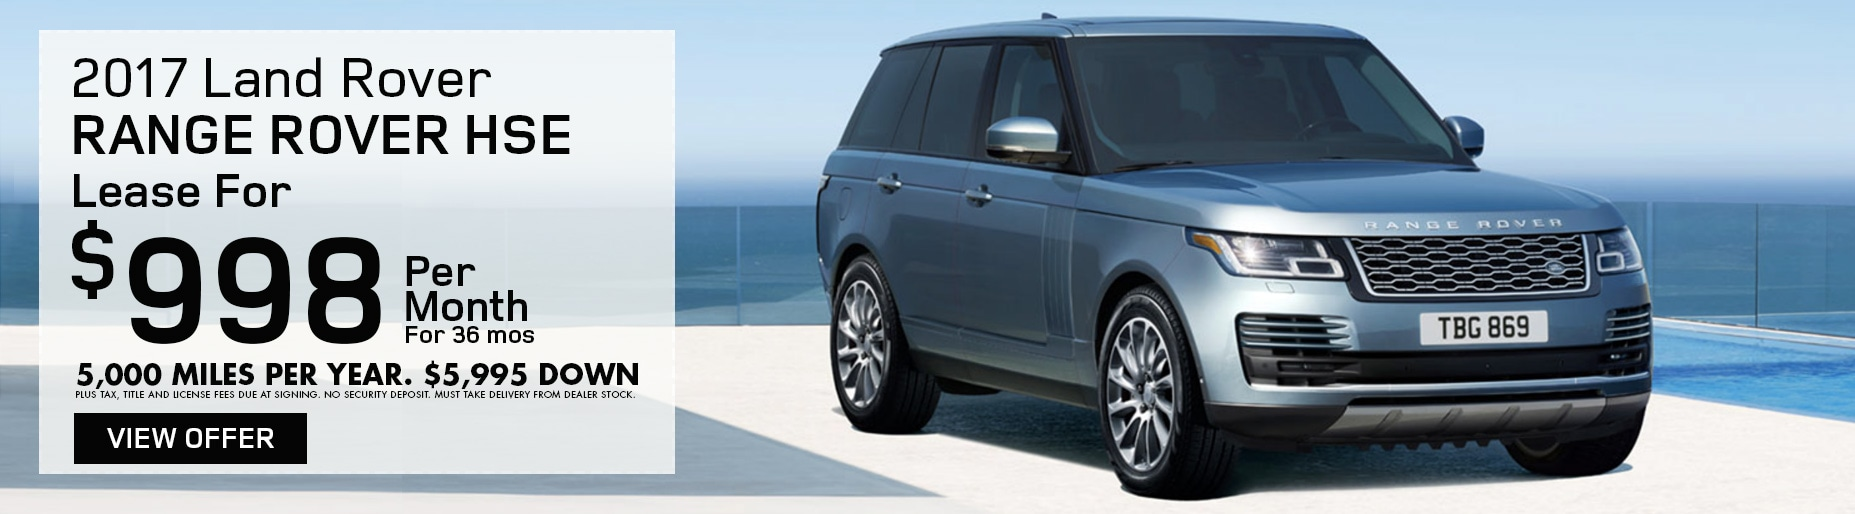 Boston Land Rover Dealer Serving Newton, Quincy, & Brookline -Land